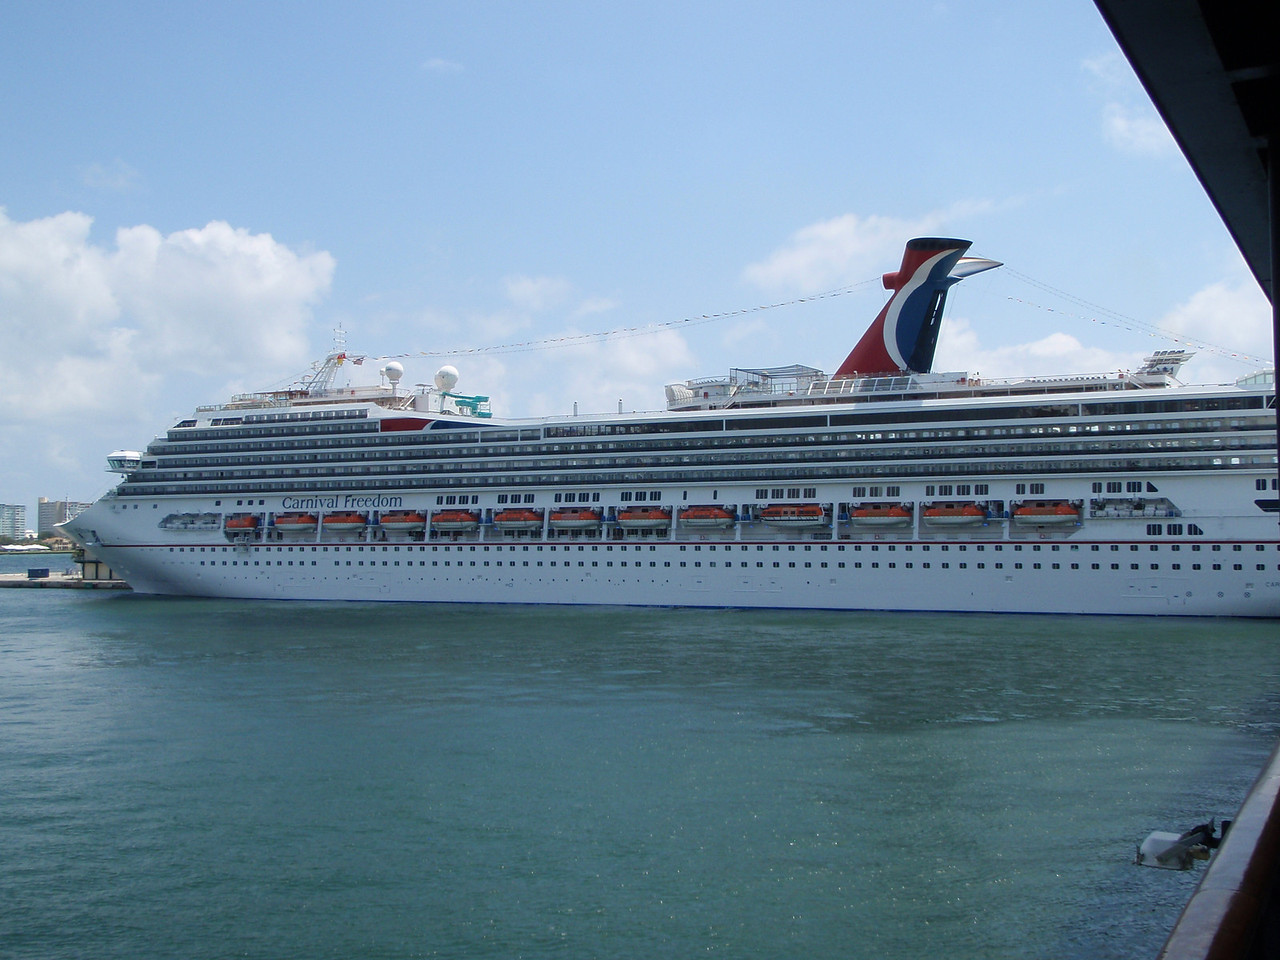 Carnival Freedom was docked in front of us.